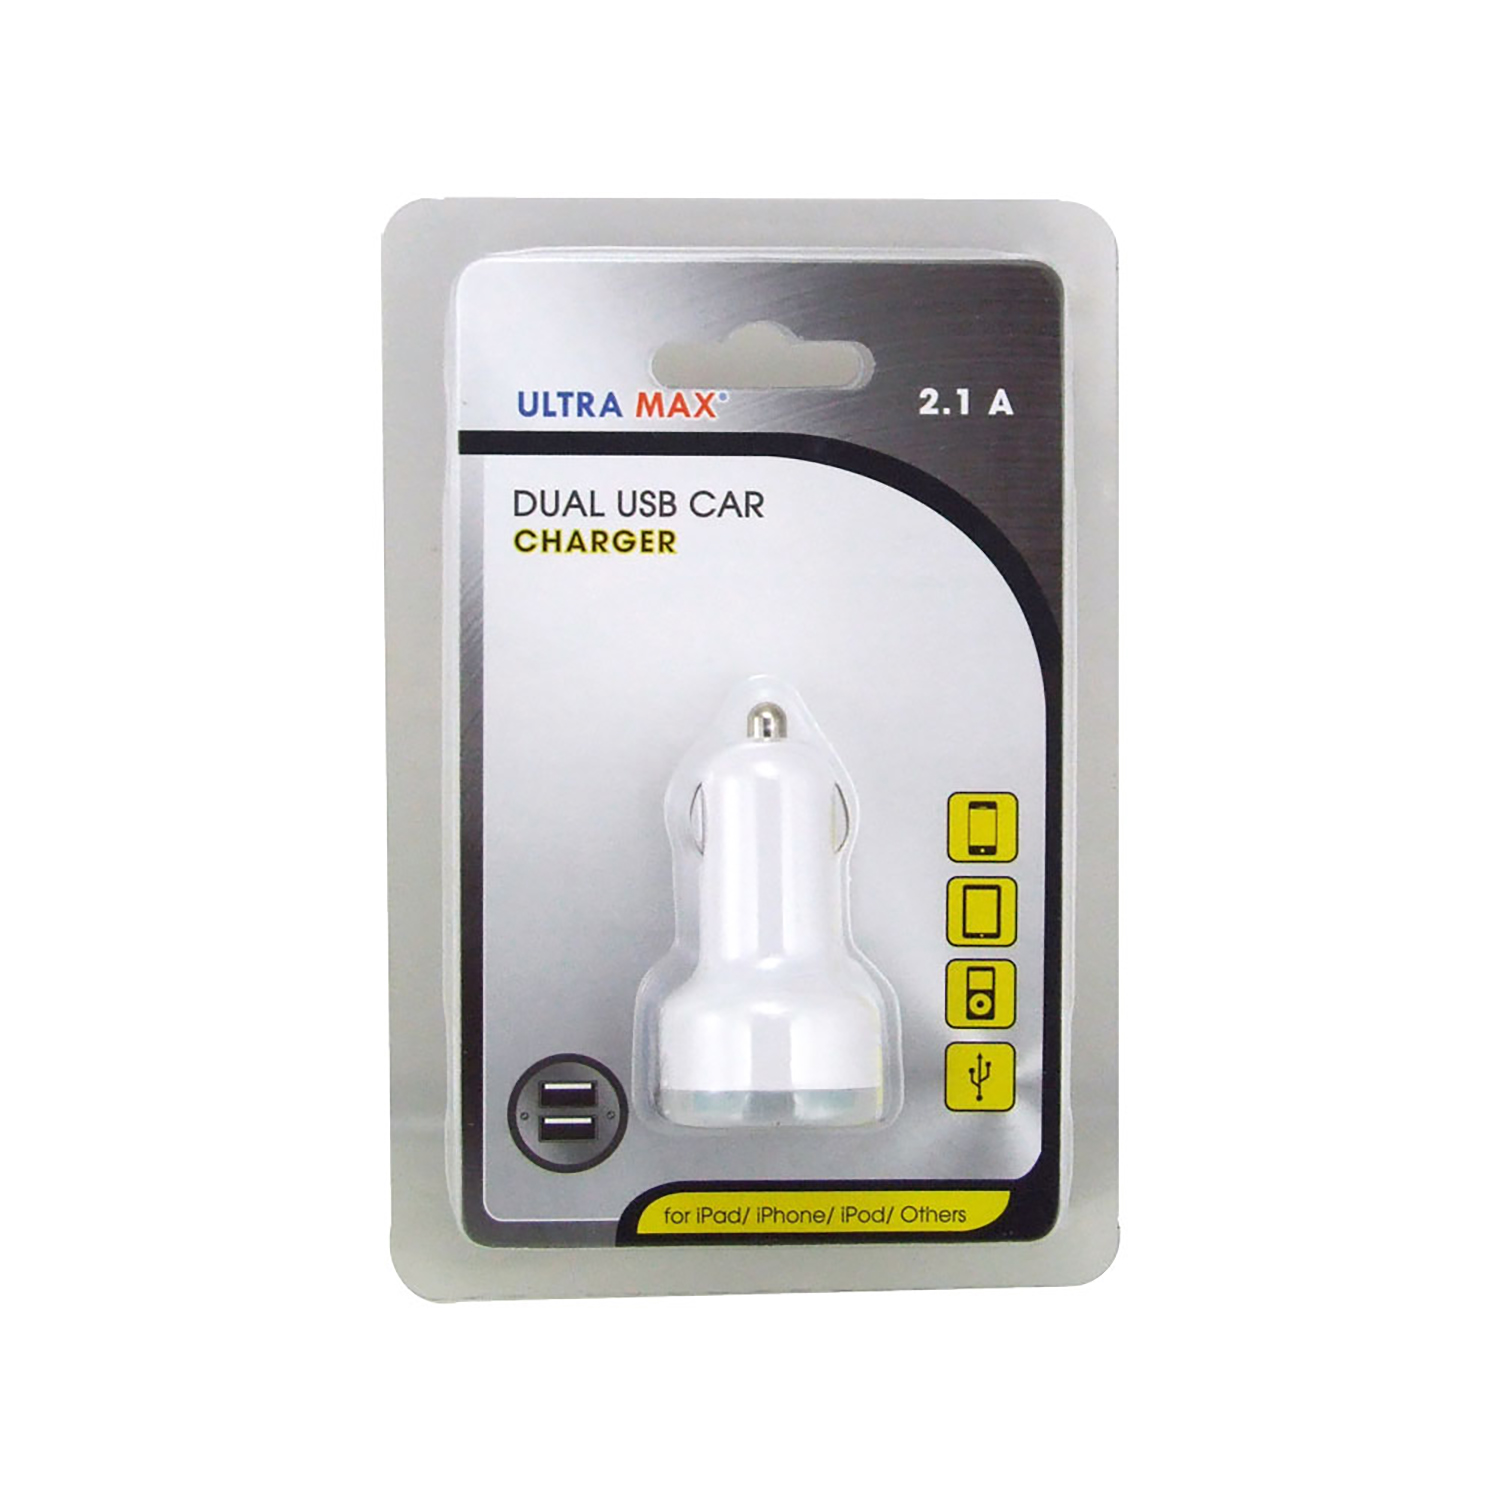 Inter connect cable Car Charger 2.1A With Two USB Ports Ref ADPUMXC-2.1A